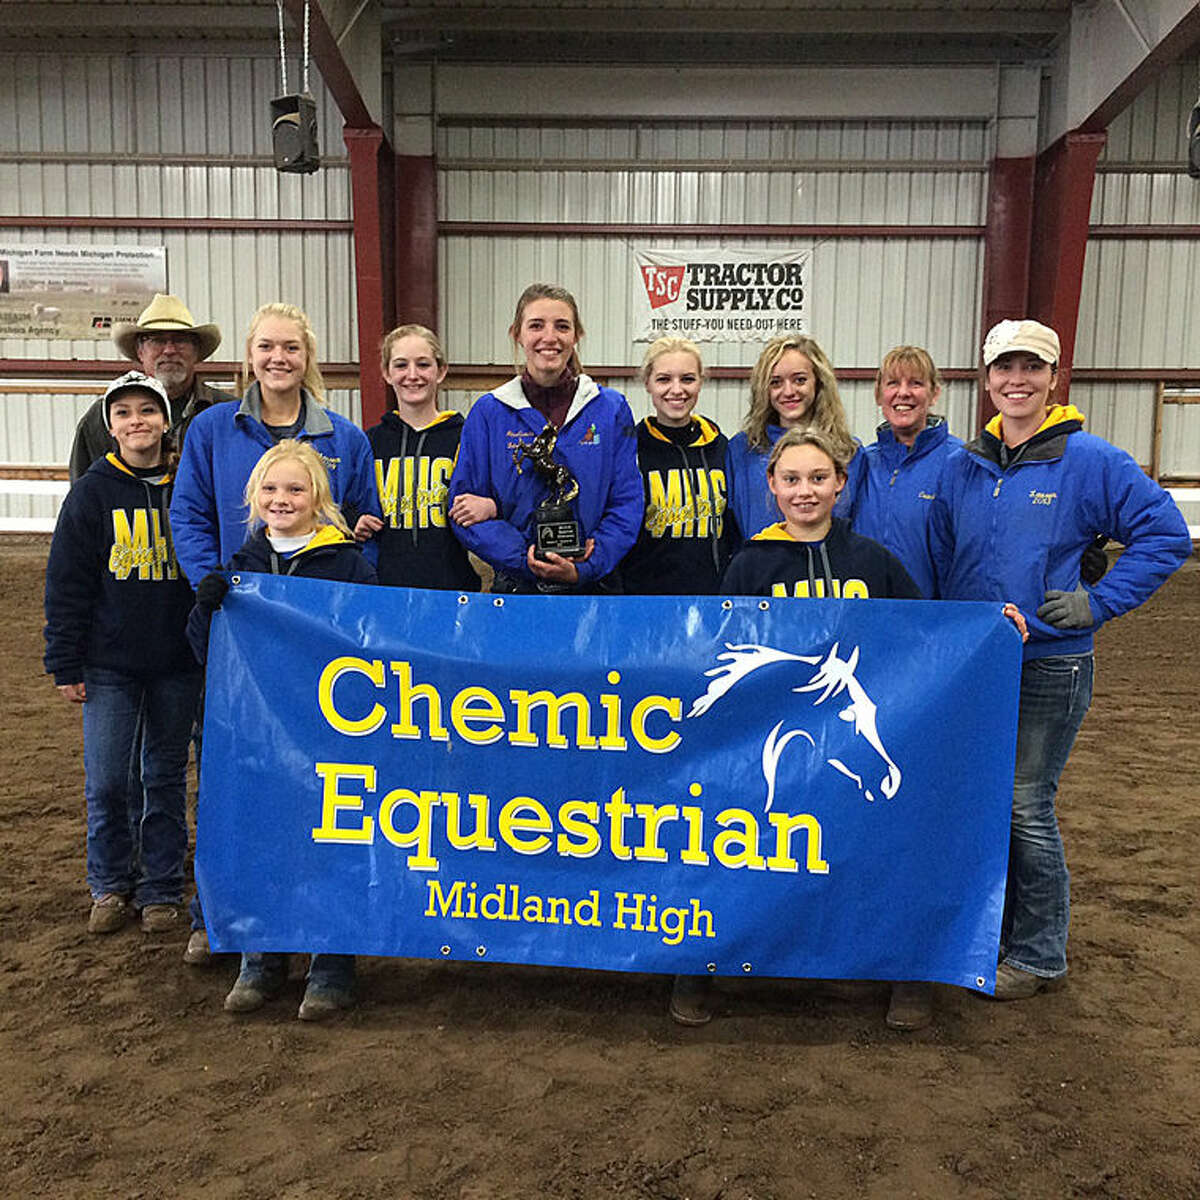 The Midland High Equestrian Club, headed to the state finals, includes (front row, from left) Hayden Purvis, McKenna Sanders; (second row, from left) coach Alex Garcia, Maureen Aloff, Serena Fleming-Dittenber, Marina Nadobny, Morgan Letzkus, Madison Pfahl, coach Boni Johnston, coach Lauren Johnston; (back row) coach Rick Young. Not pictured is Makela Rabideau.